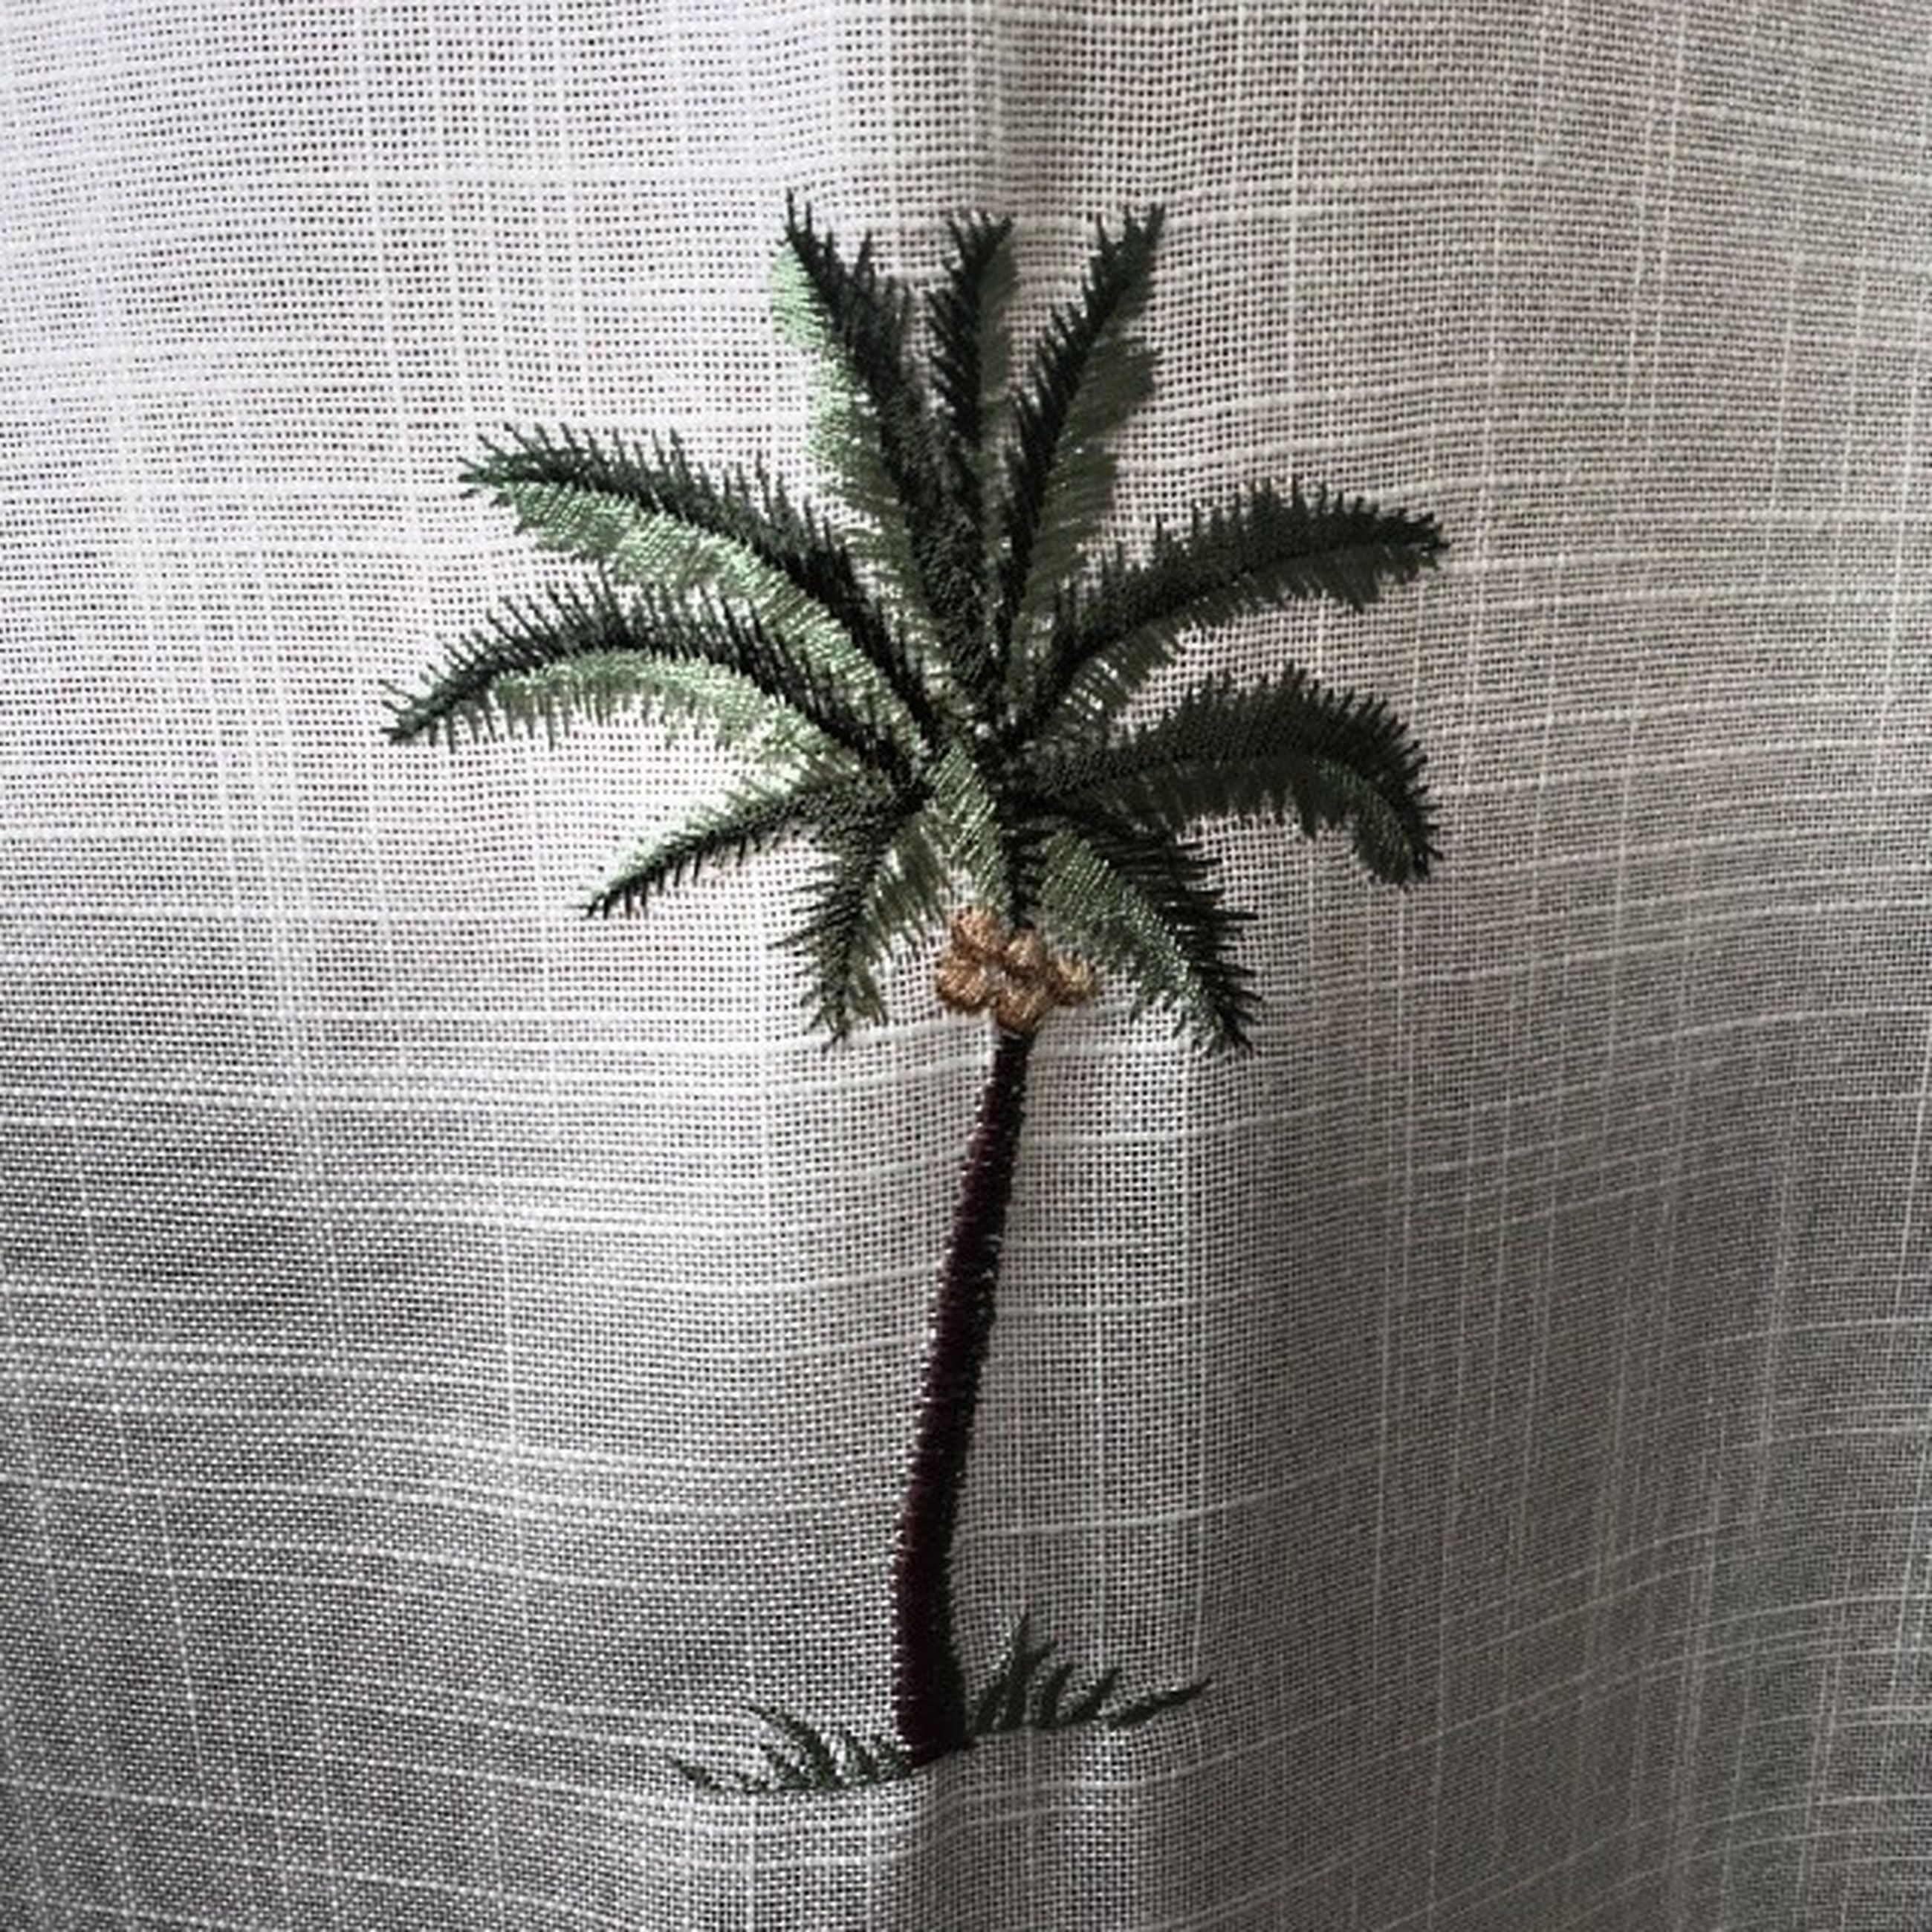 wall - building feature, indoors, close-up, wall, pattern, growth, reflection, palm tree, textured, leaf, day, no people, glass - material, nature, green color, plant, built structure, shadow, curtain